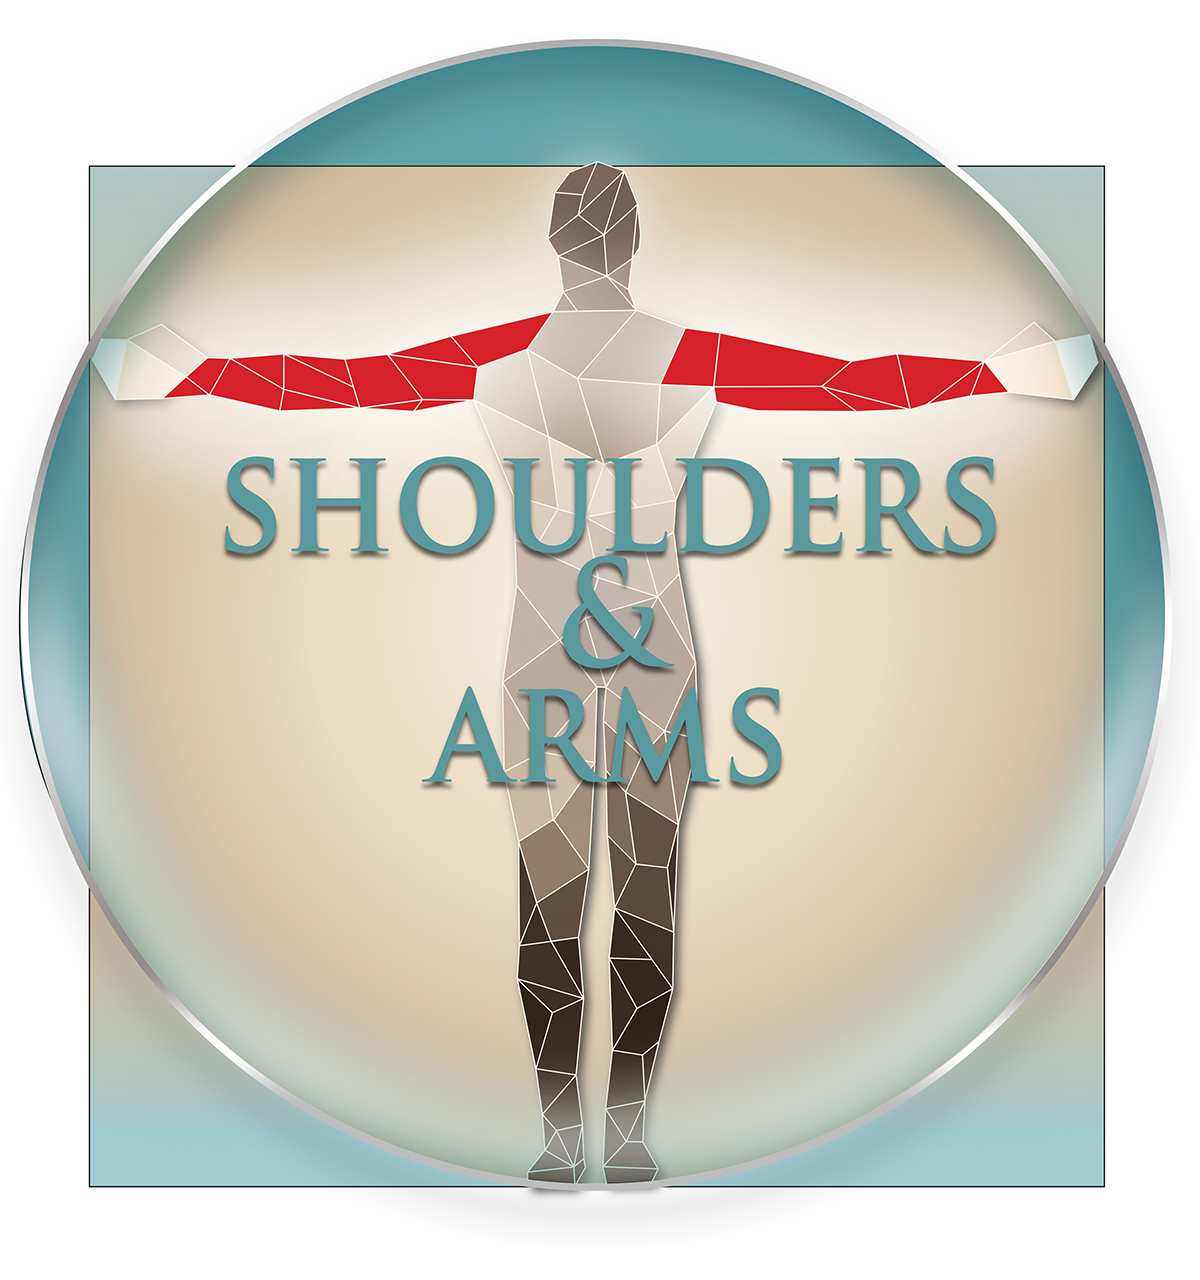 Shoulder/Arms